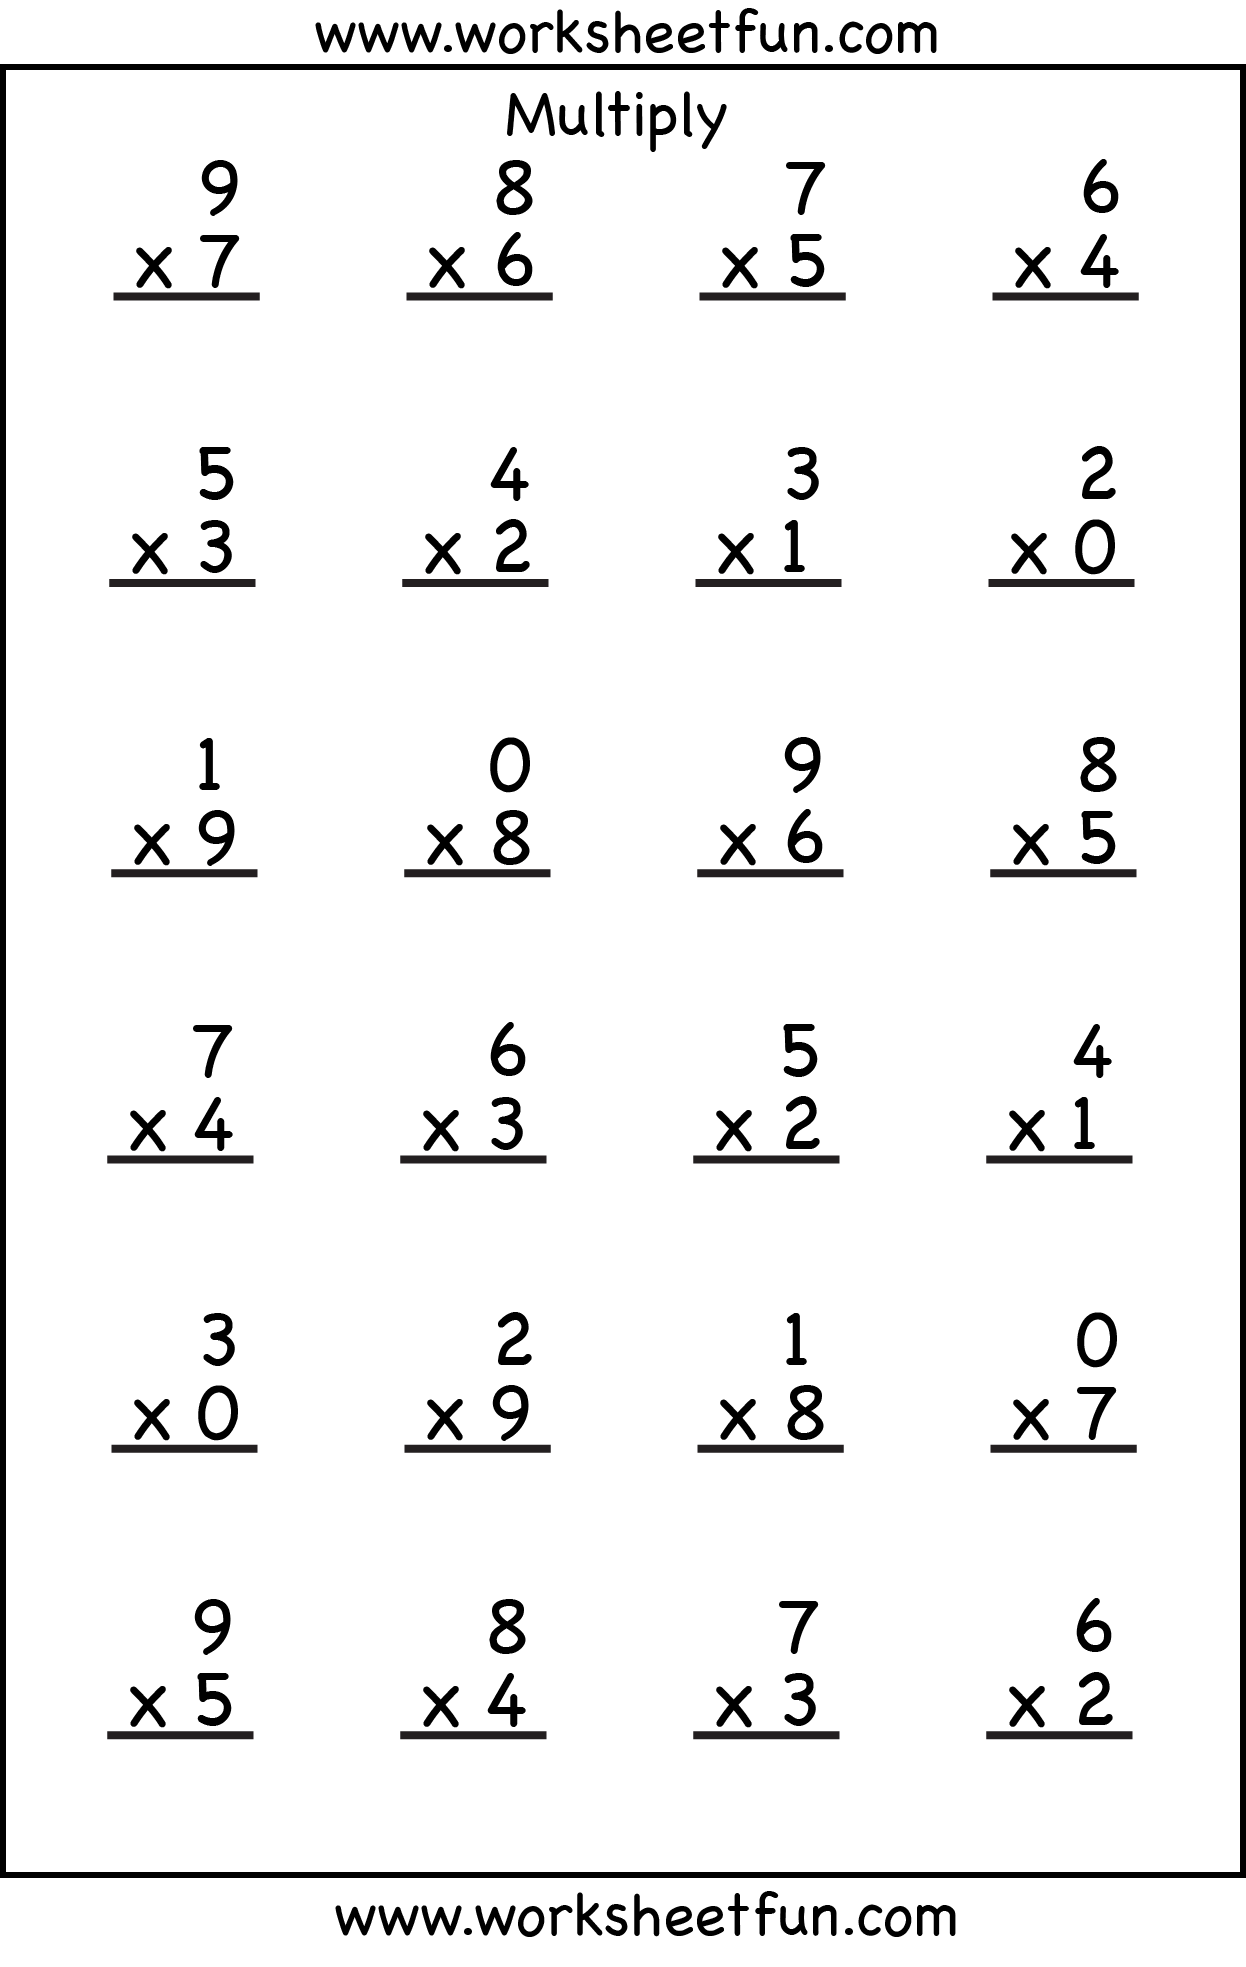 Printables Single Digit Multiplication Worksheets Printable Free single digit multiplication worksheets abitlikethis 4 multiplication